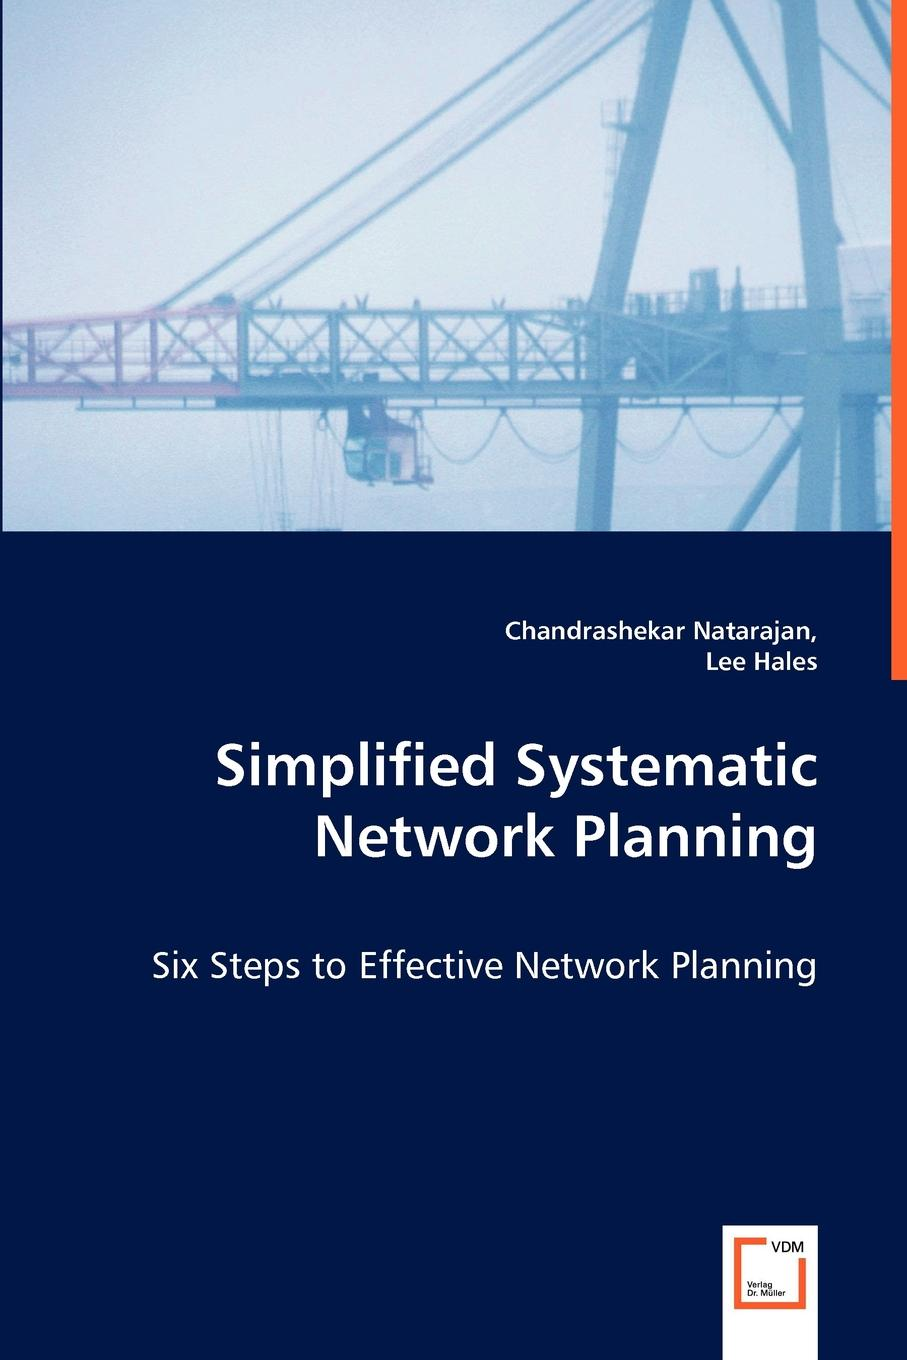 Chandrashekar Natarajan, Lee Hales Simplified Systematic Network Planning - Six Steps to Effective Network Planning abdiqani egal planning and administering project contracts